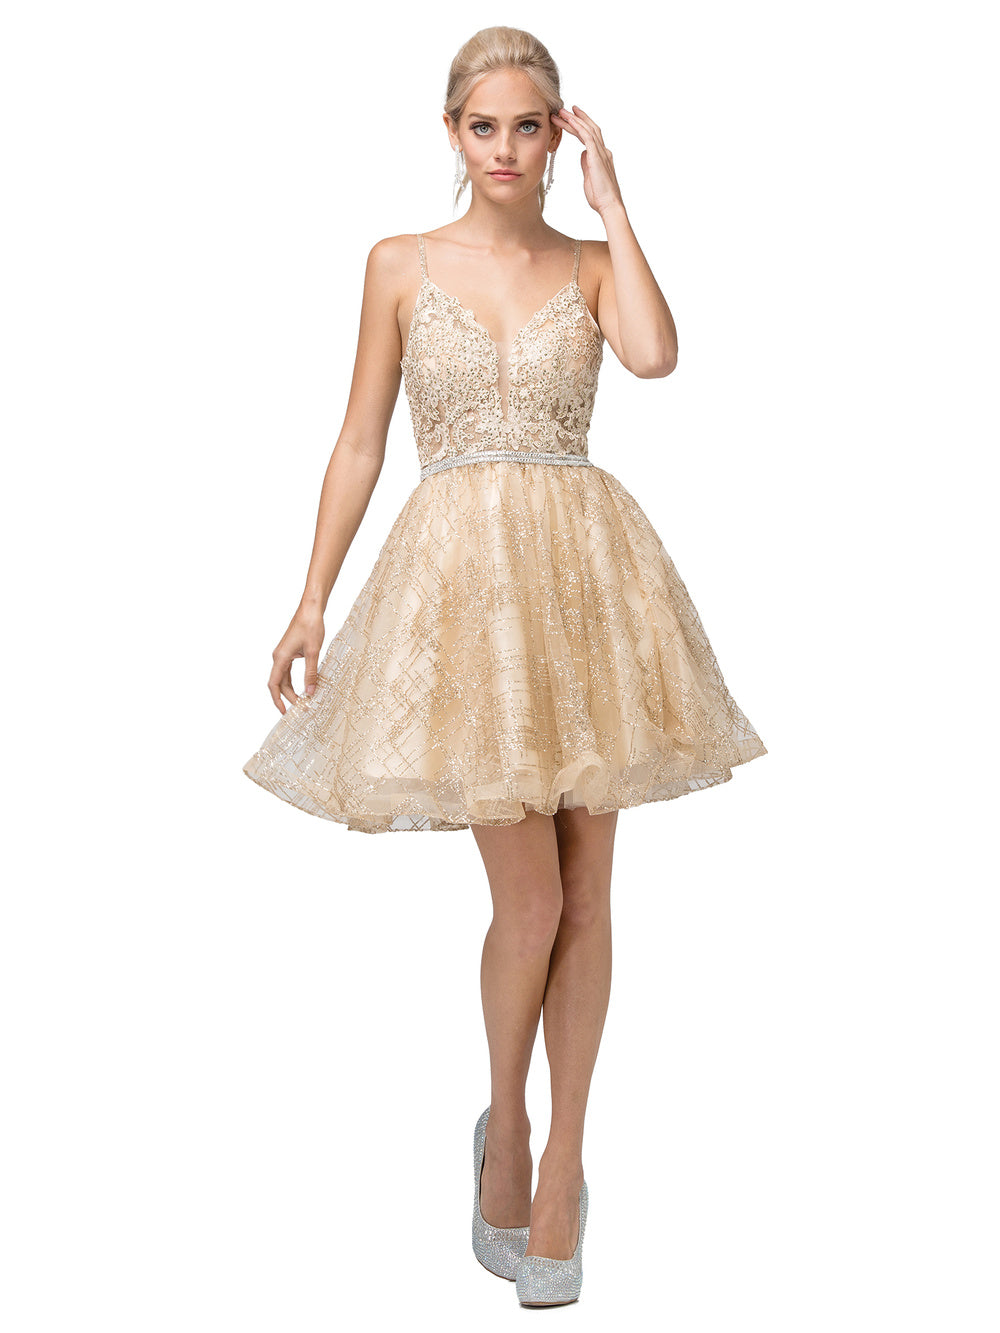 DQ 3152 - Short Glitter Homecoming Dress with Lace Applique on Bodice and Beaded Belt - Diggz Prom